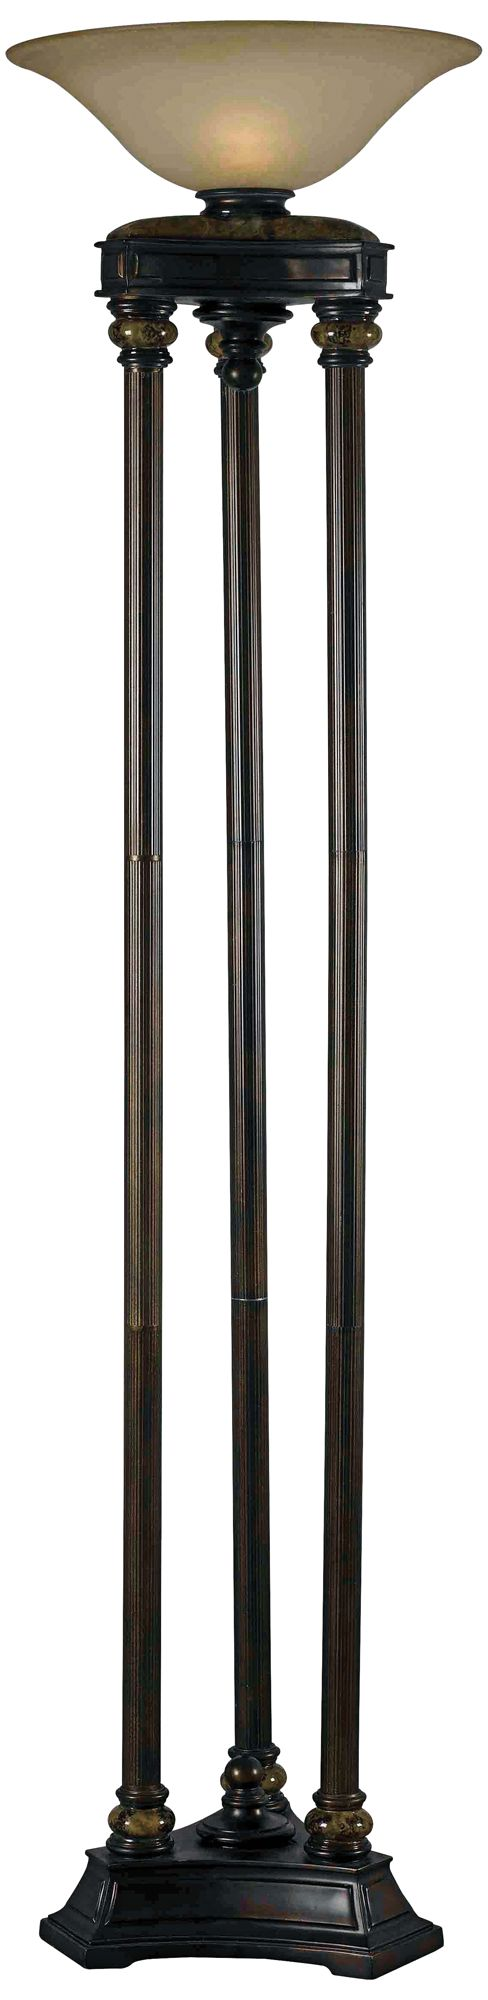 kenroy home colossus bronze 3pole torchiere floor lamp - Pole Lamps